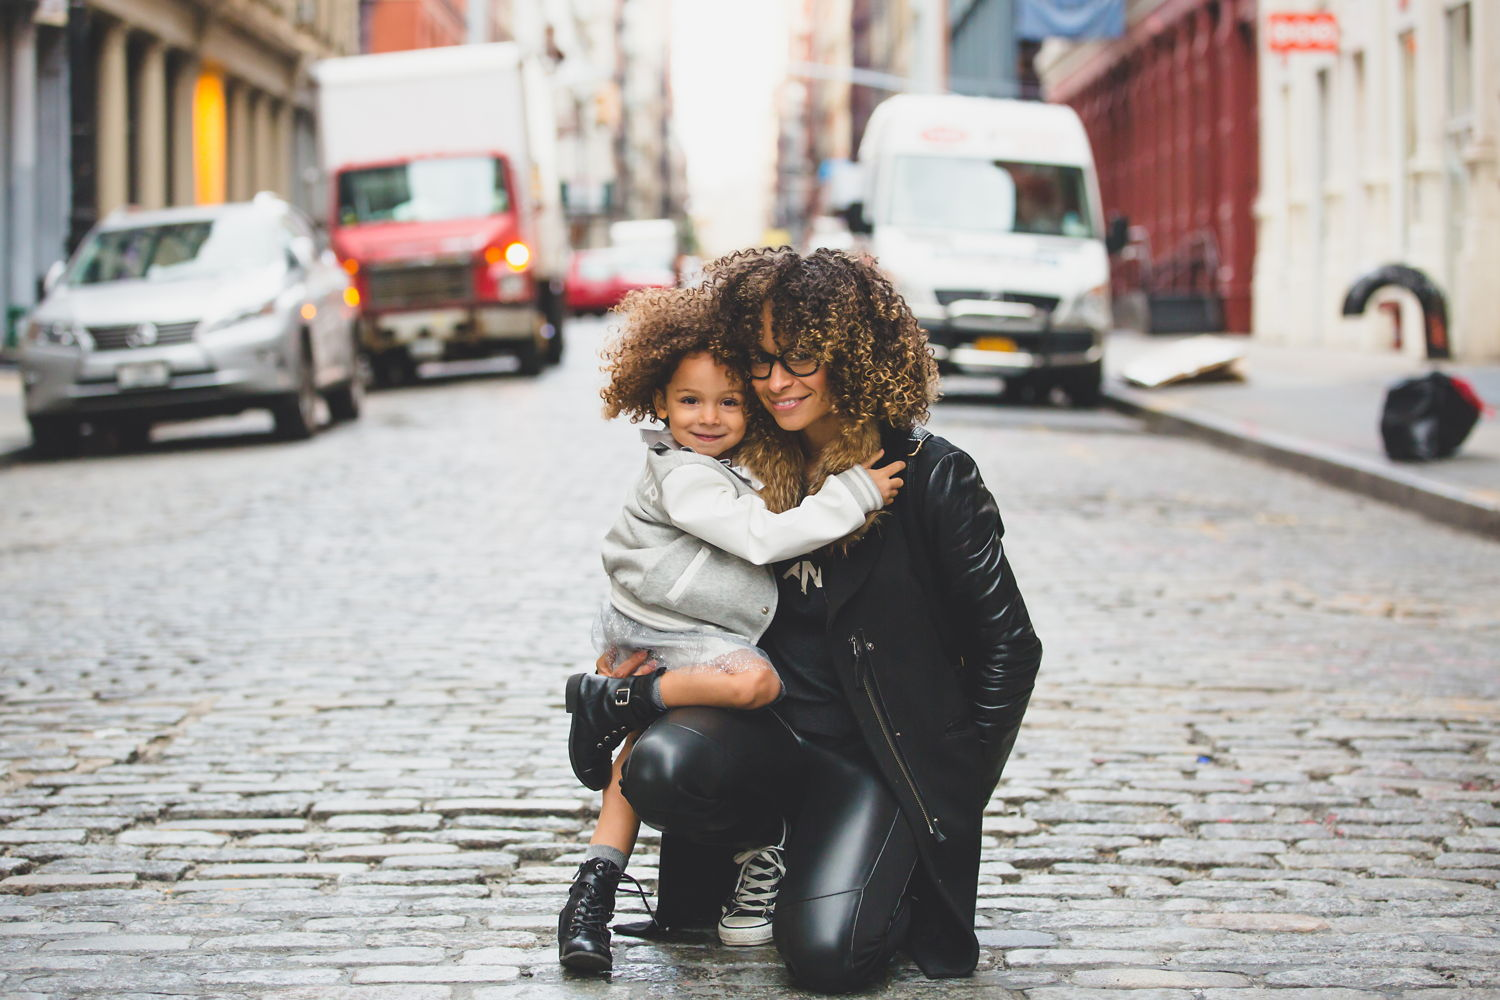 Woman with her daughter on a city street